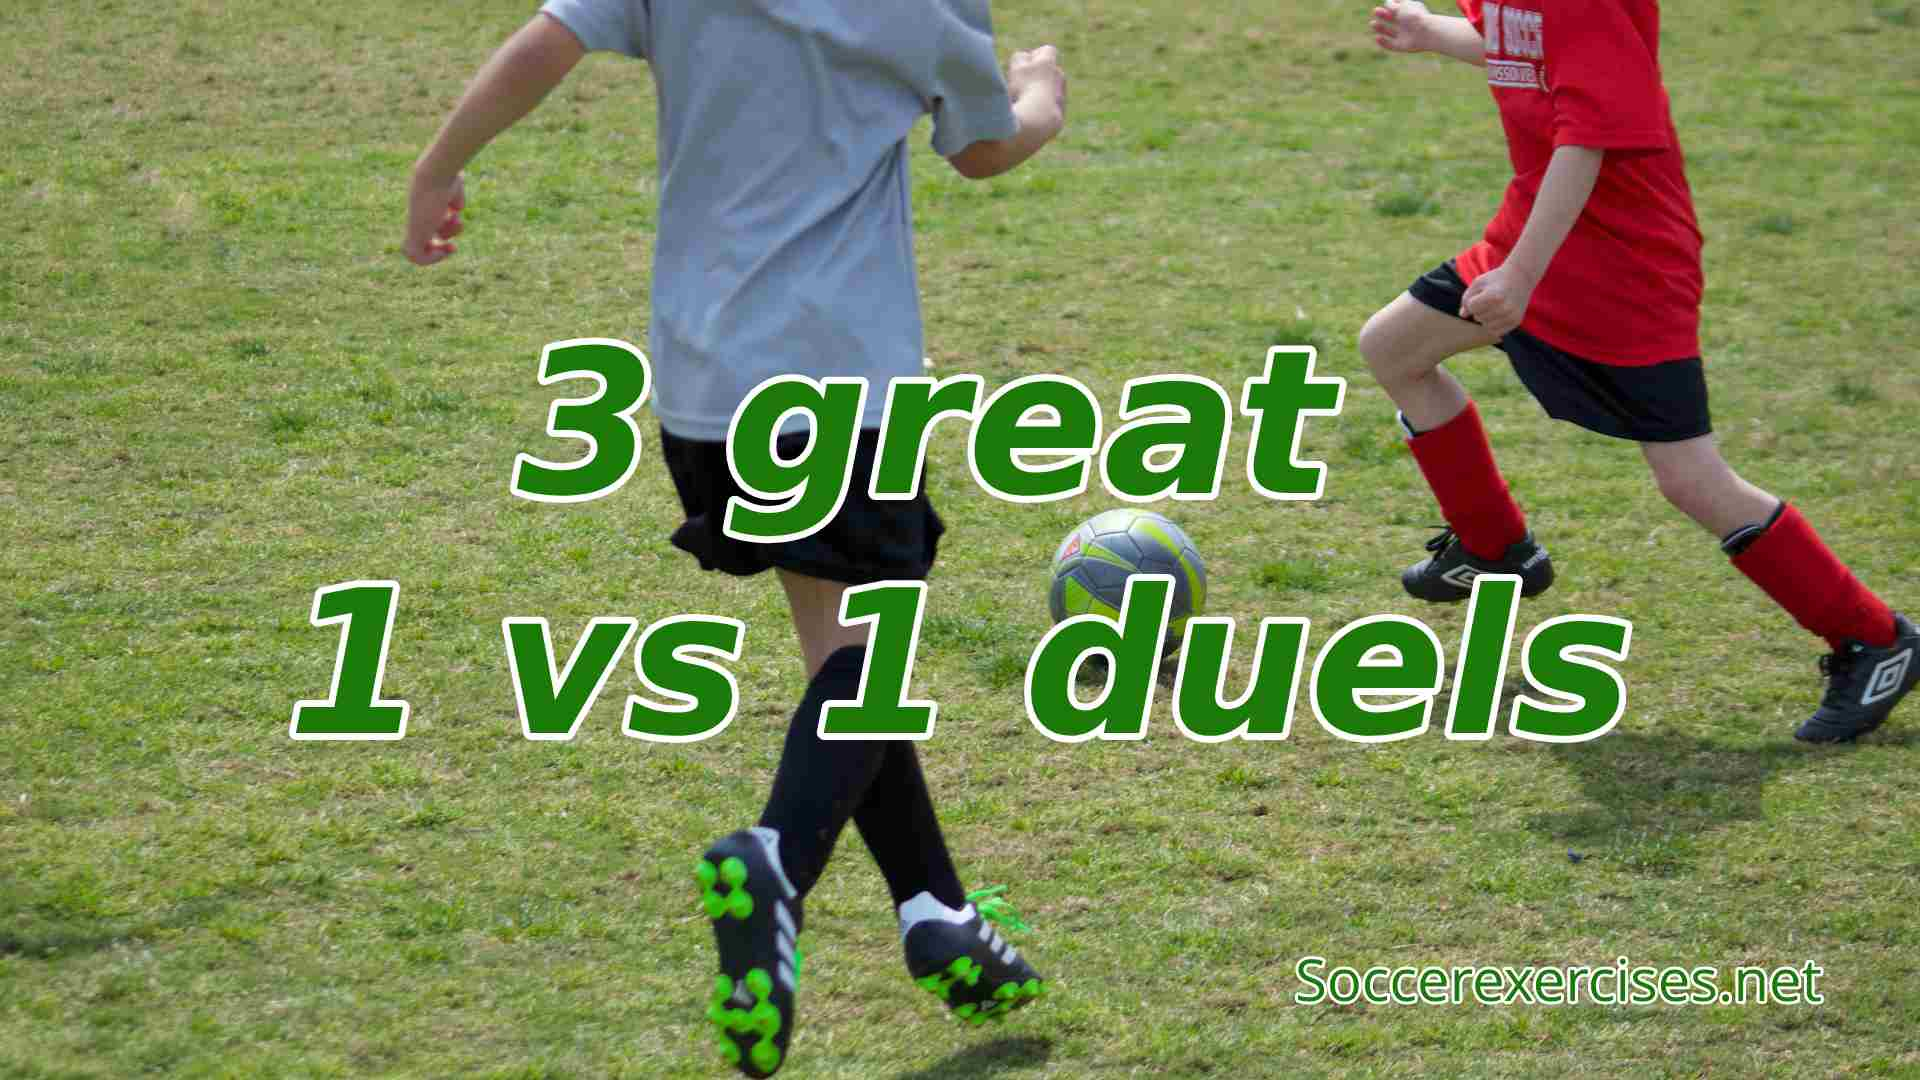 #78 3 great 1 VS 1 duels drills